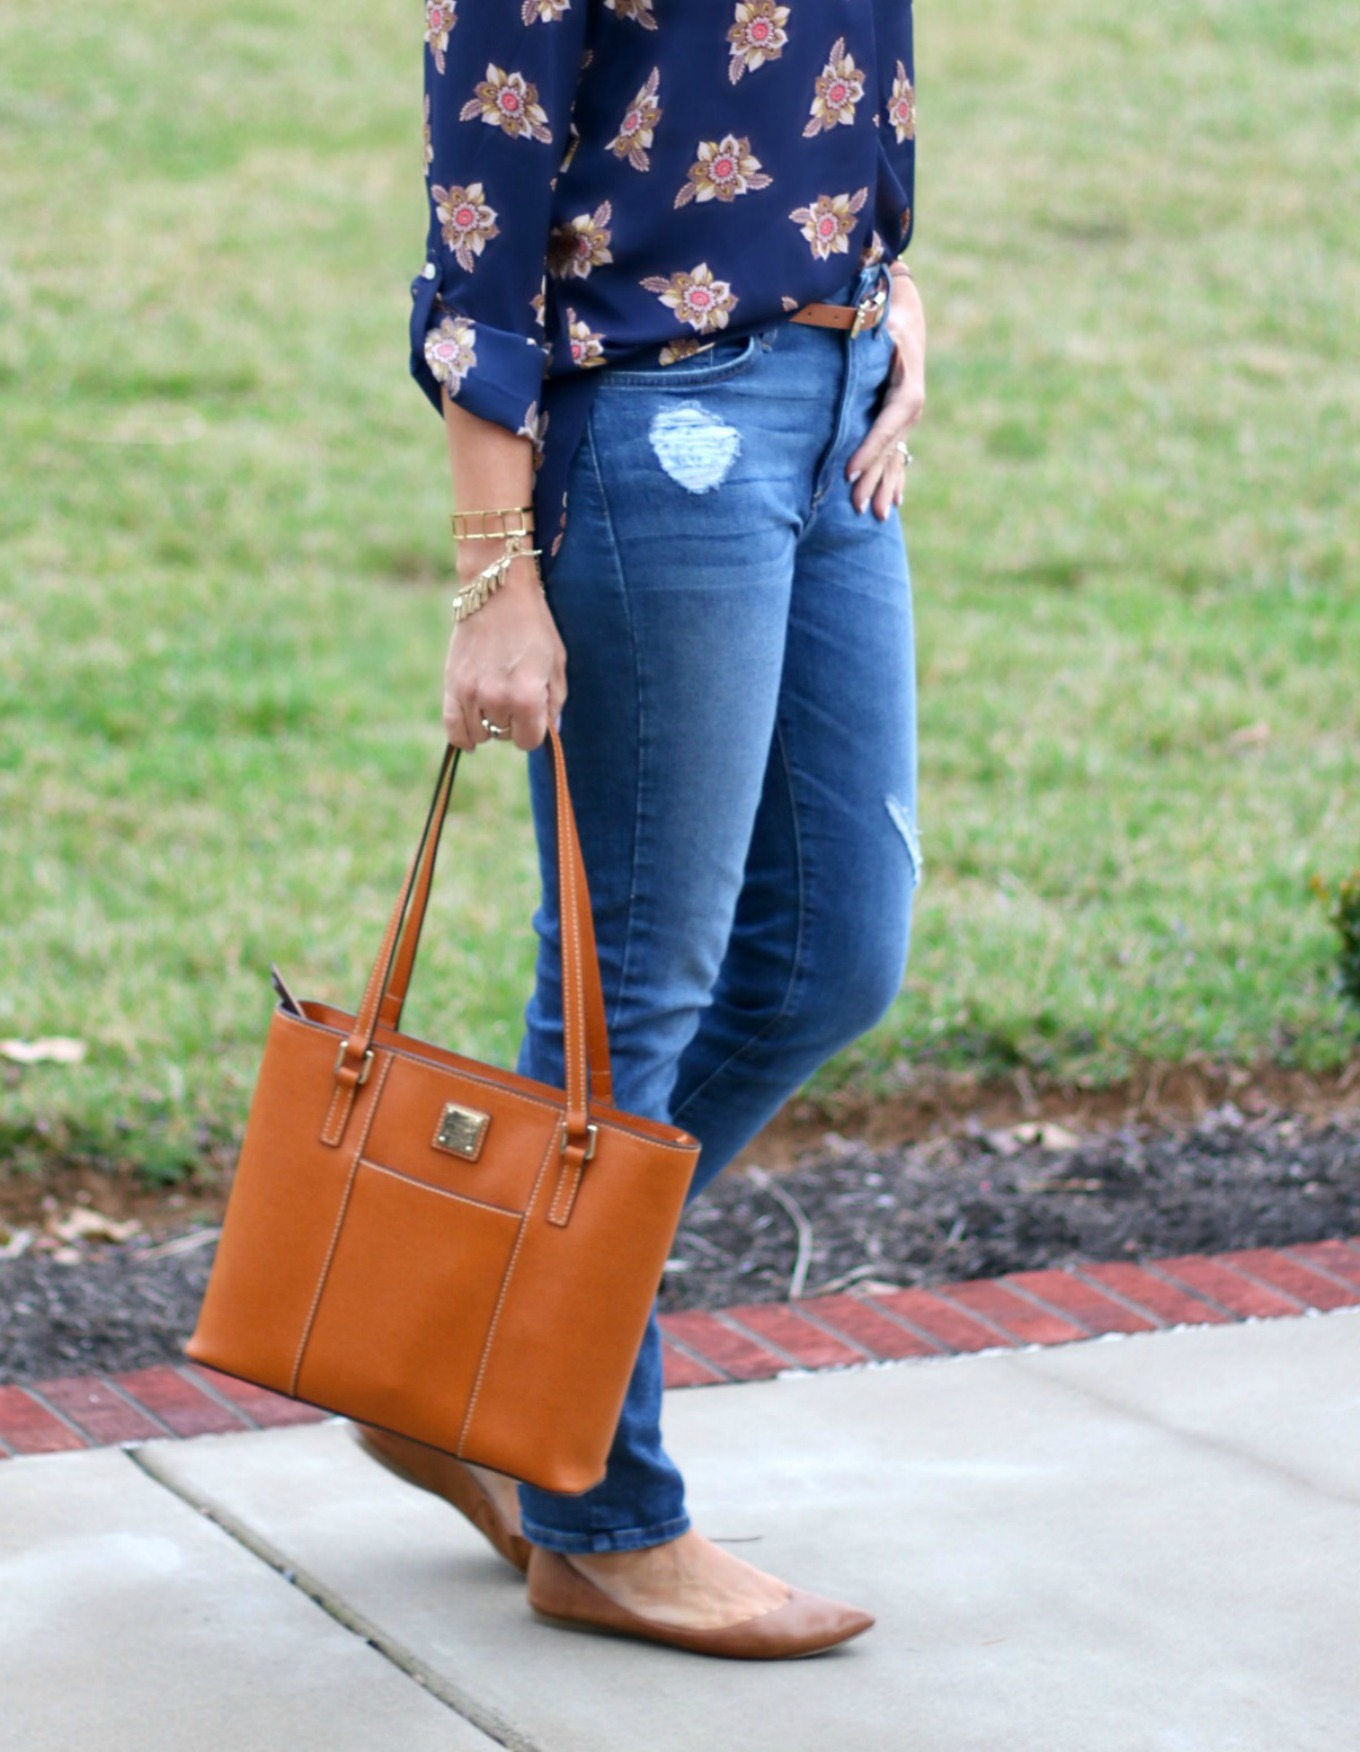 Fashion blogger, Cyndi Spivey, styling a Dooney & Bourke handbag from Macy's.